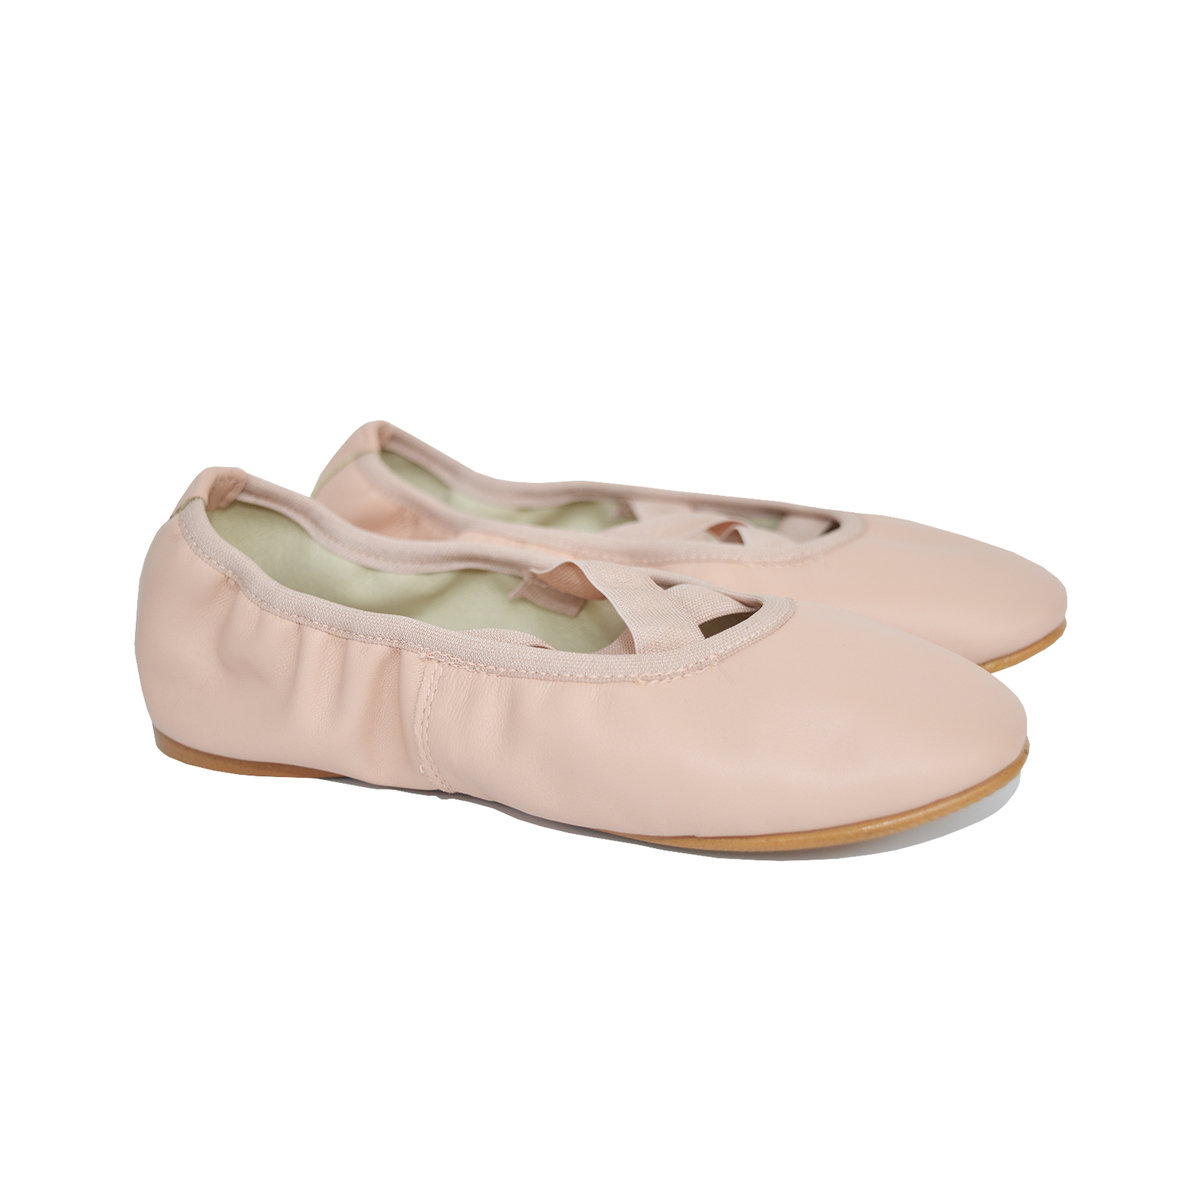 Light Pink Leather Ballerina Shoes Thumbnail